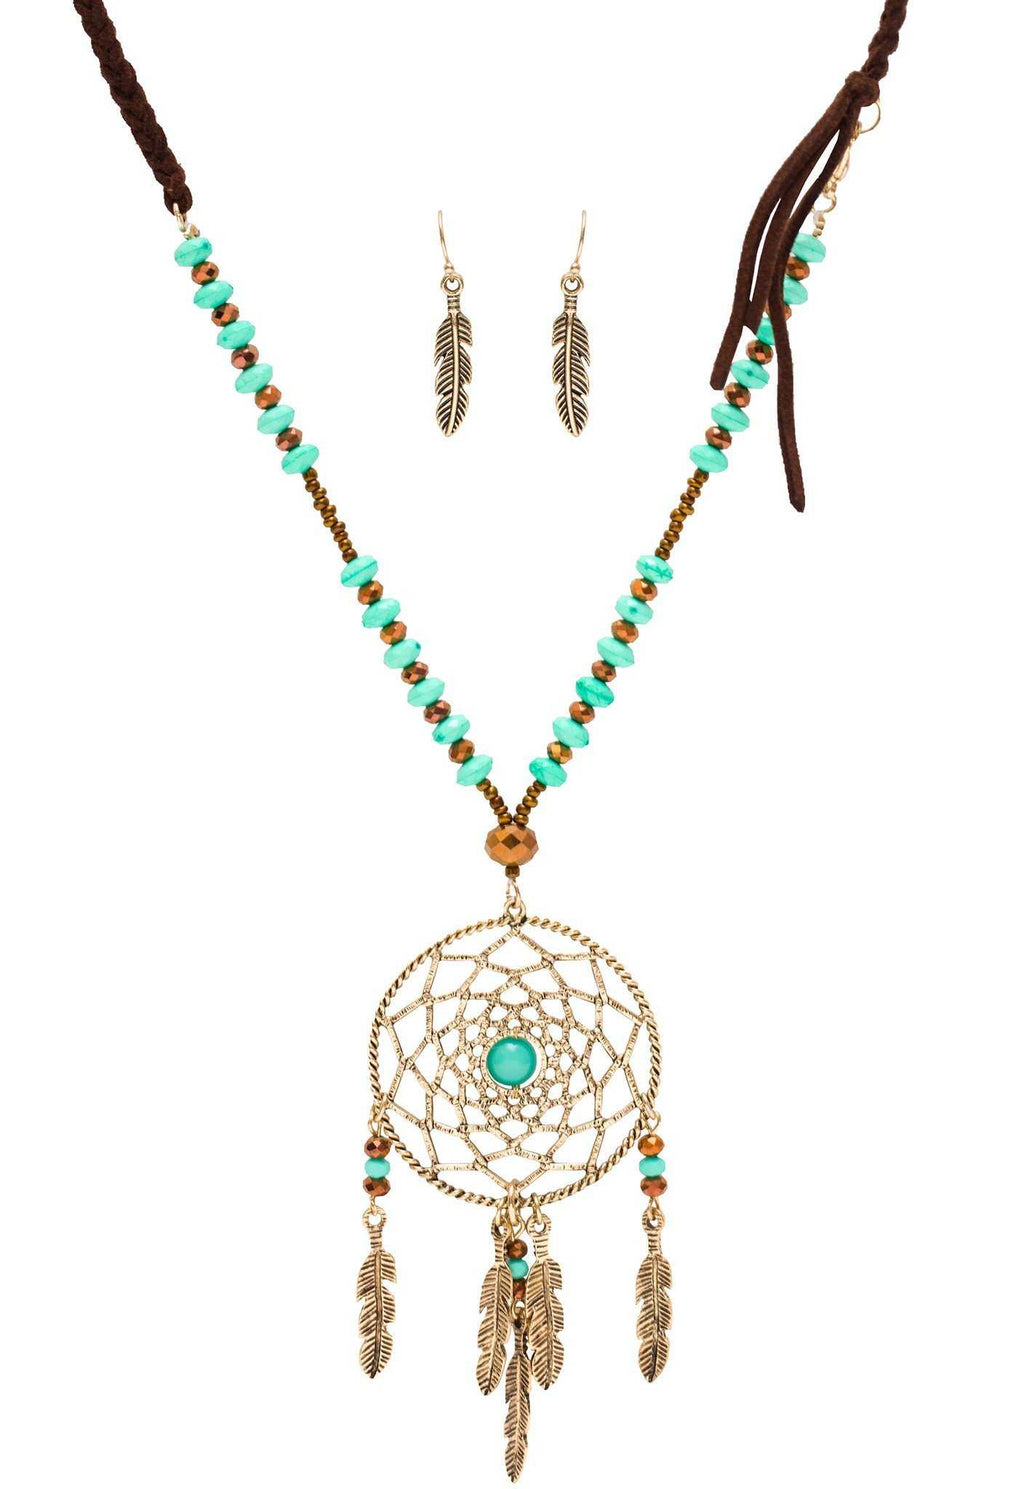 Jewelry - Joya Dreamcatcher Necklace Set - Turquoise